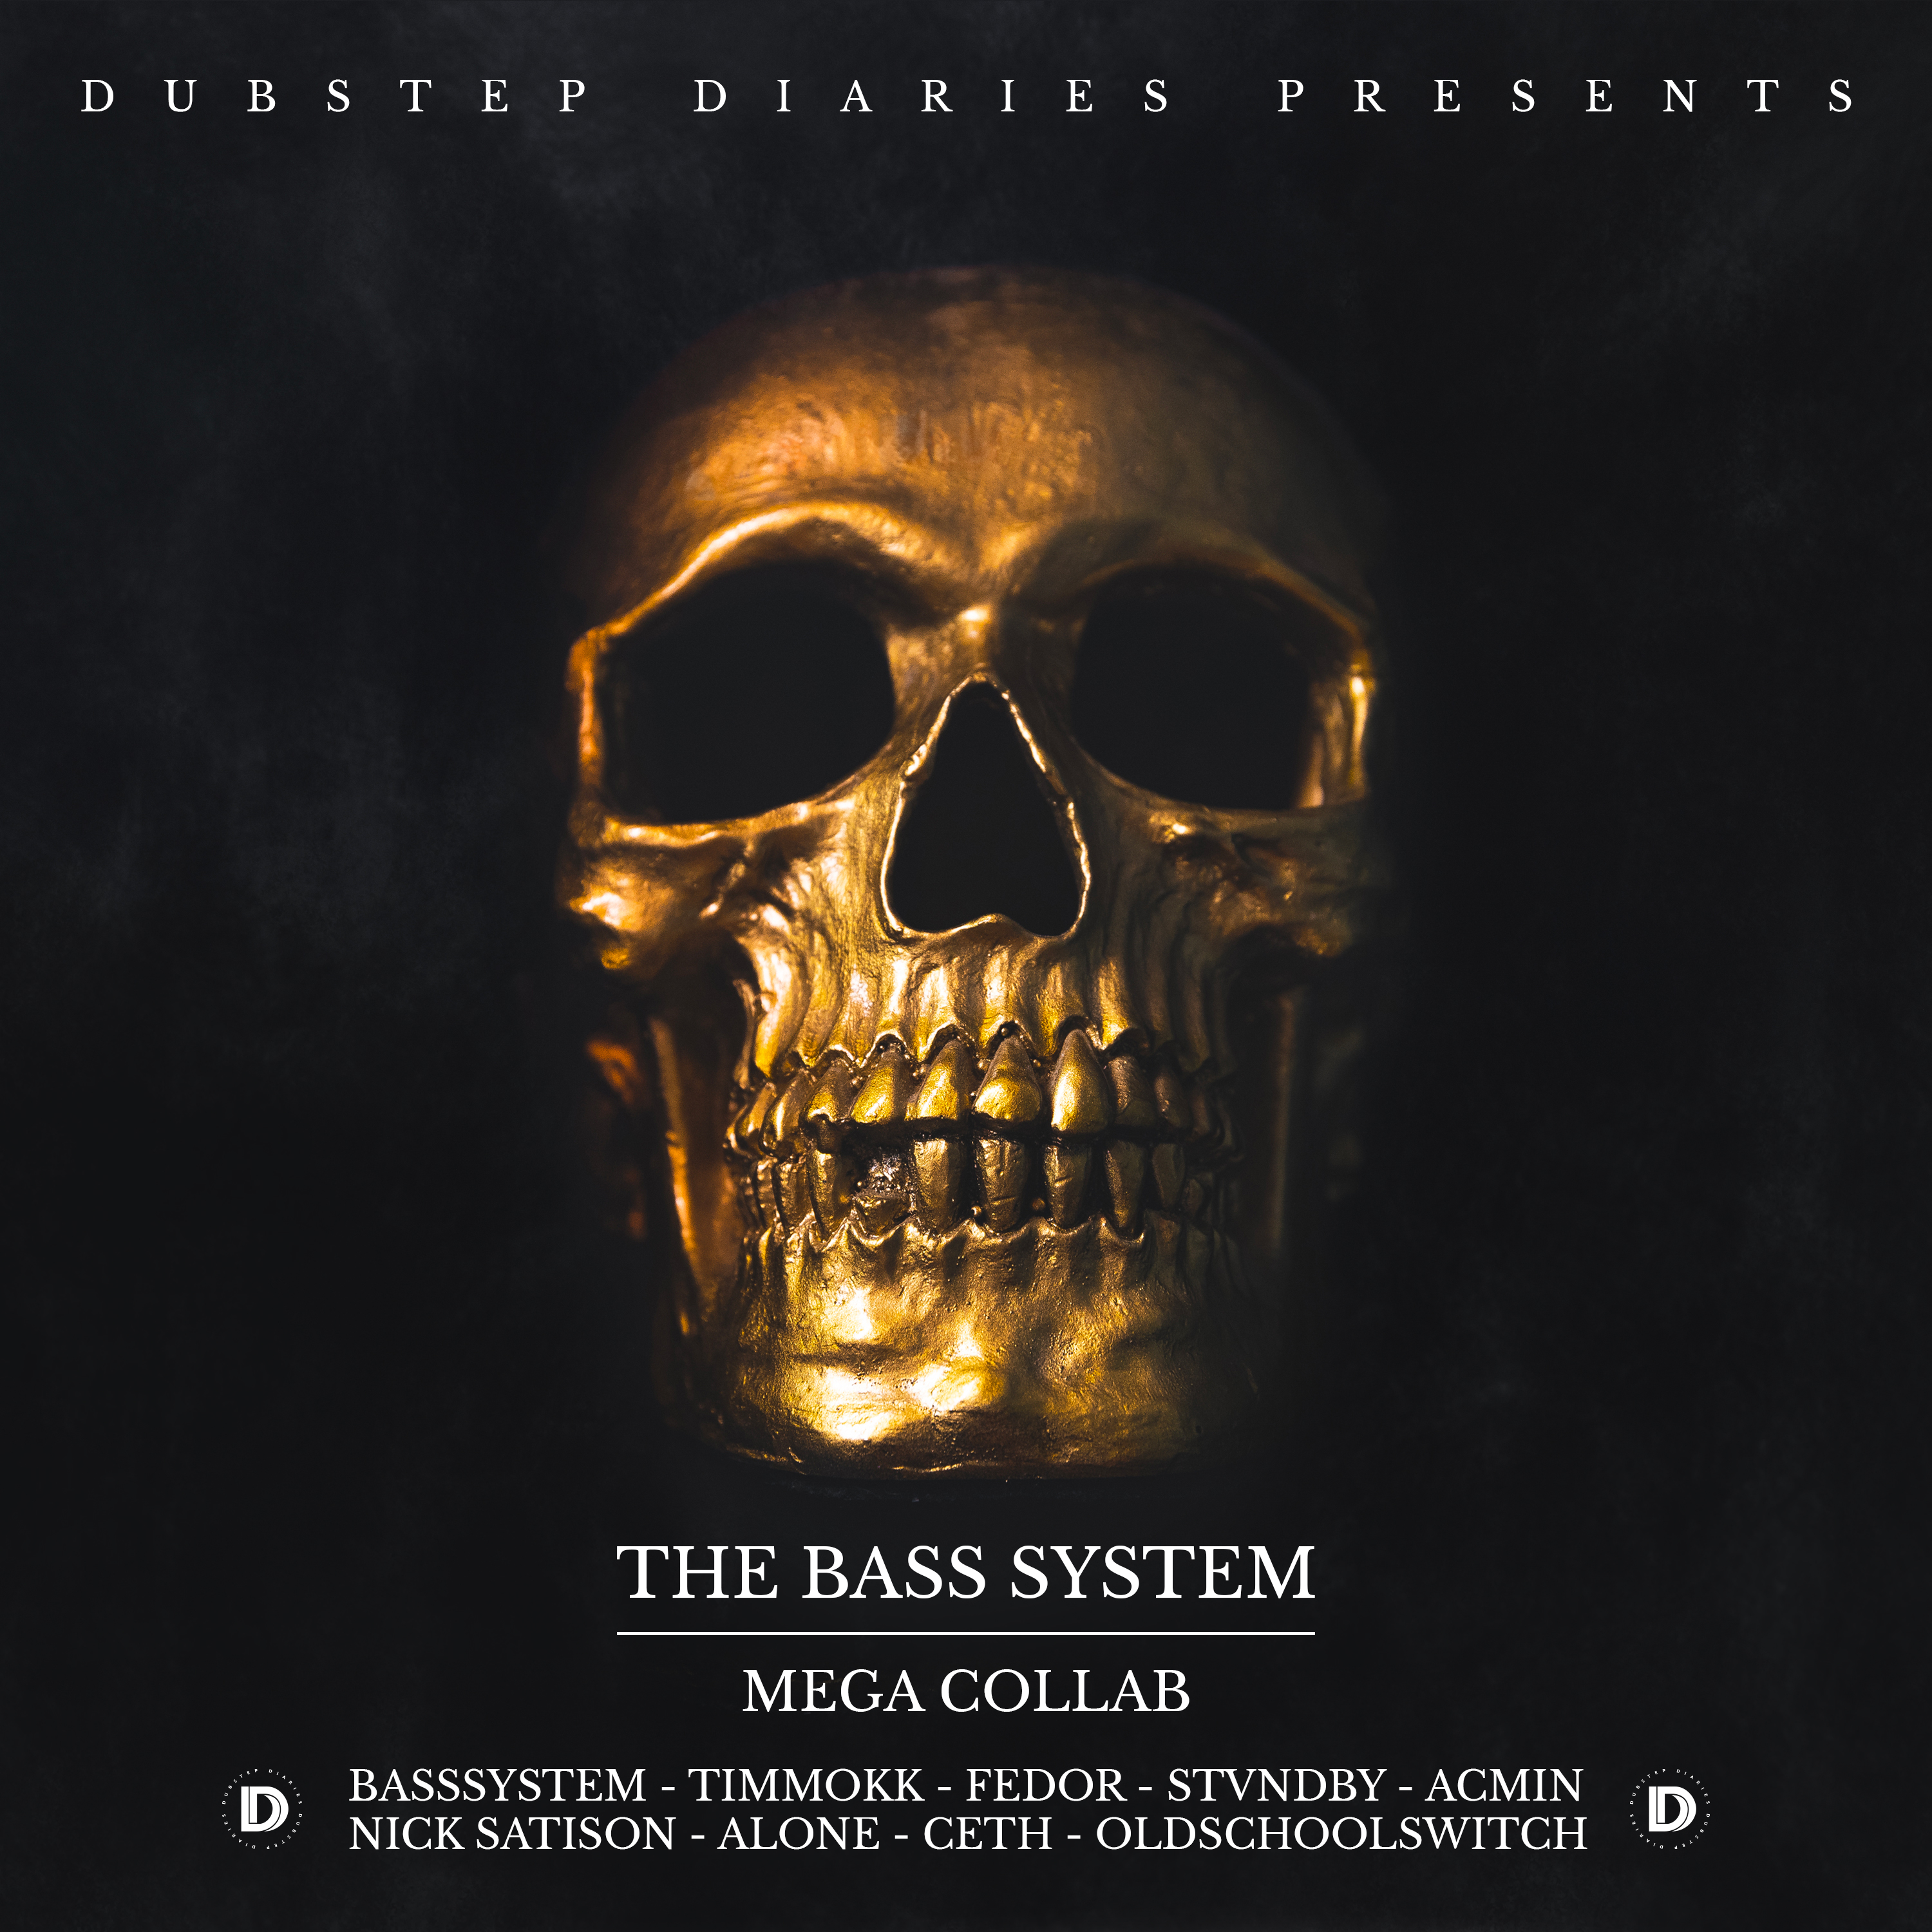 The Bass System Mega Collab Image